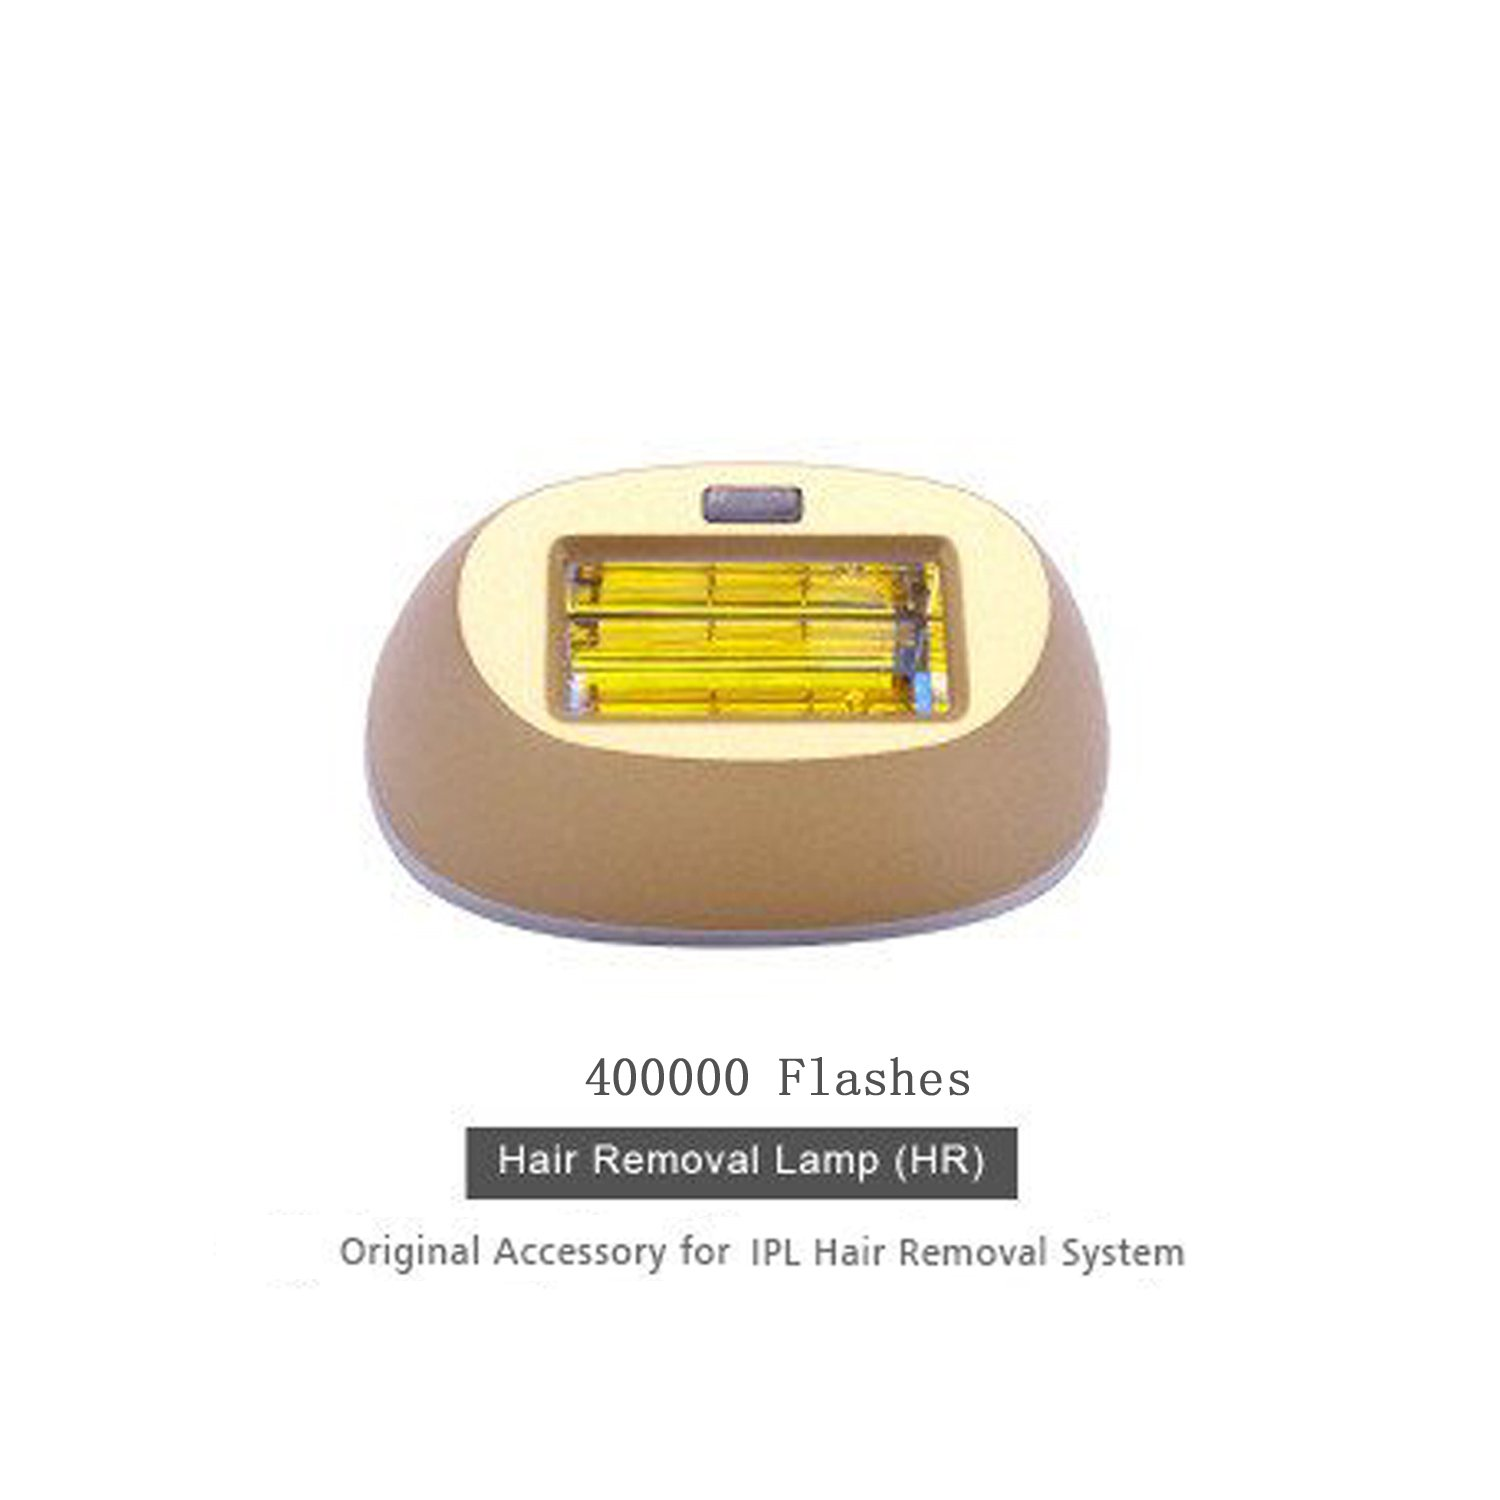 Hair Removal Machine Lamp 400000 Flashes (Hair Removal Lamp) for Asin B07CKJ972D